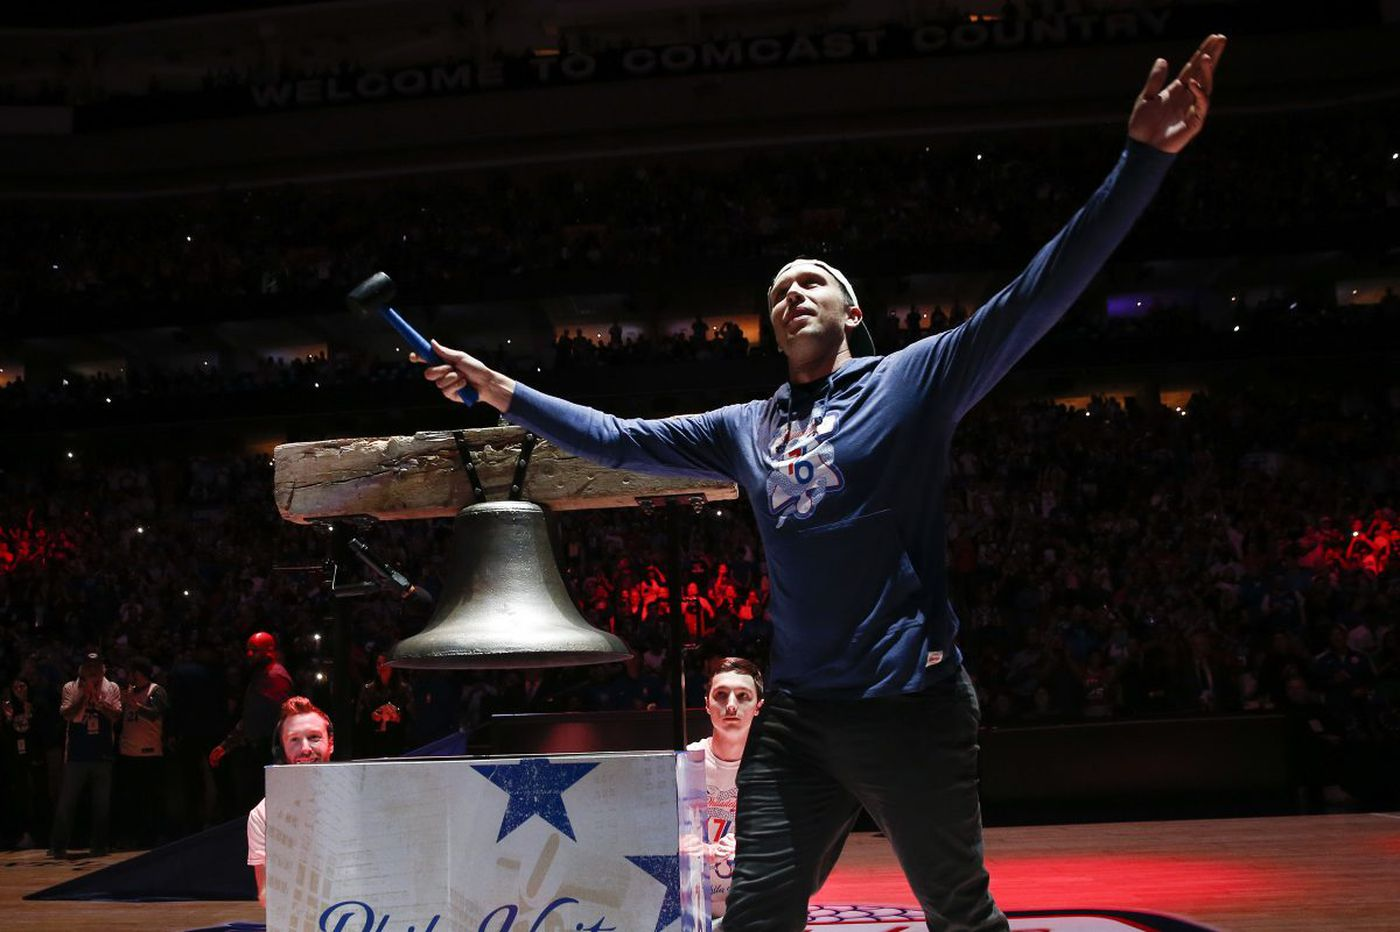 Watch: Super Bowl MVP Nick Foles rings the bell before Game 3